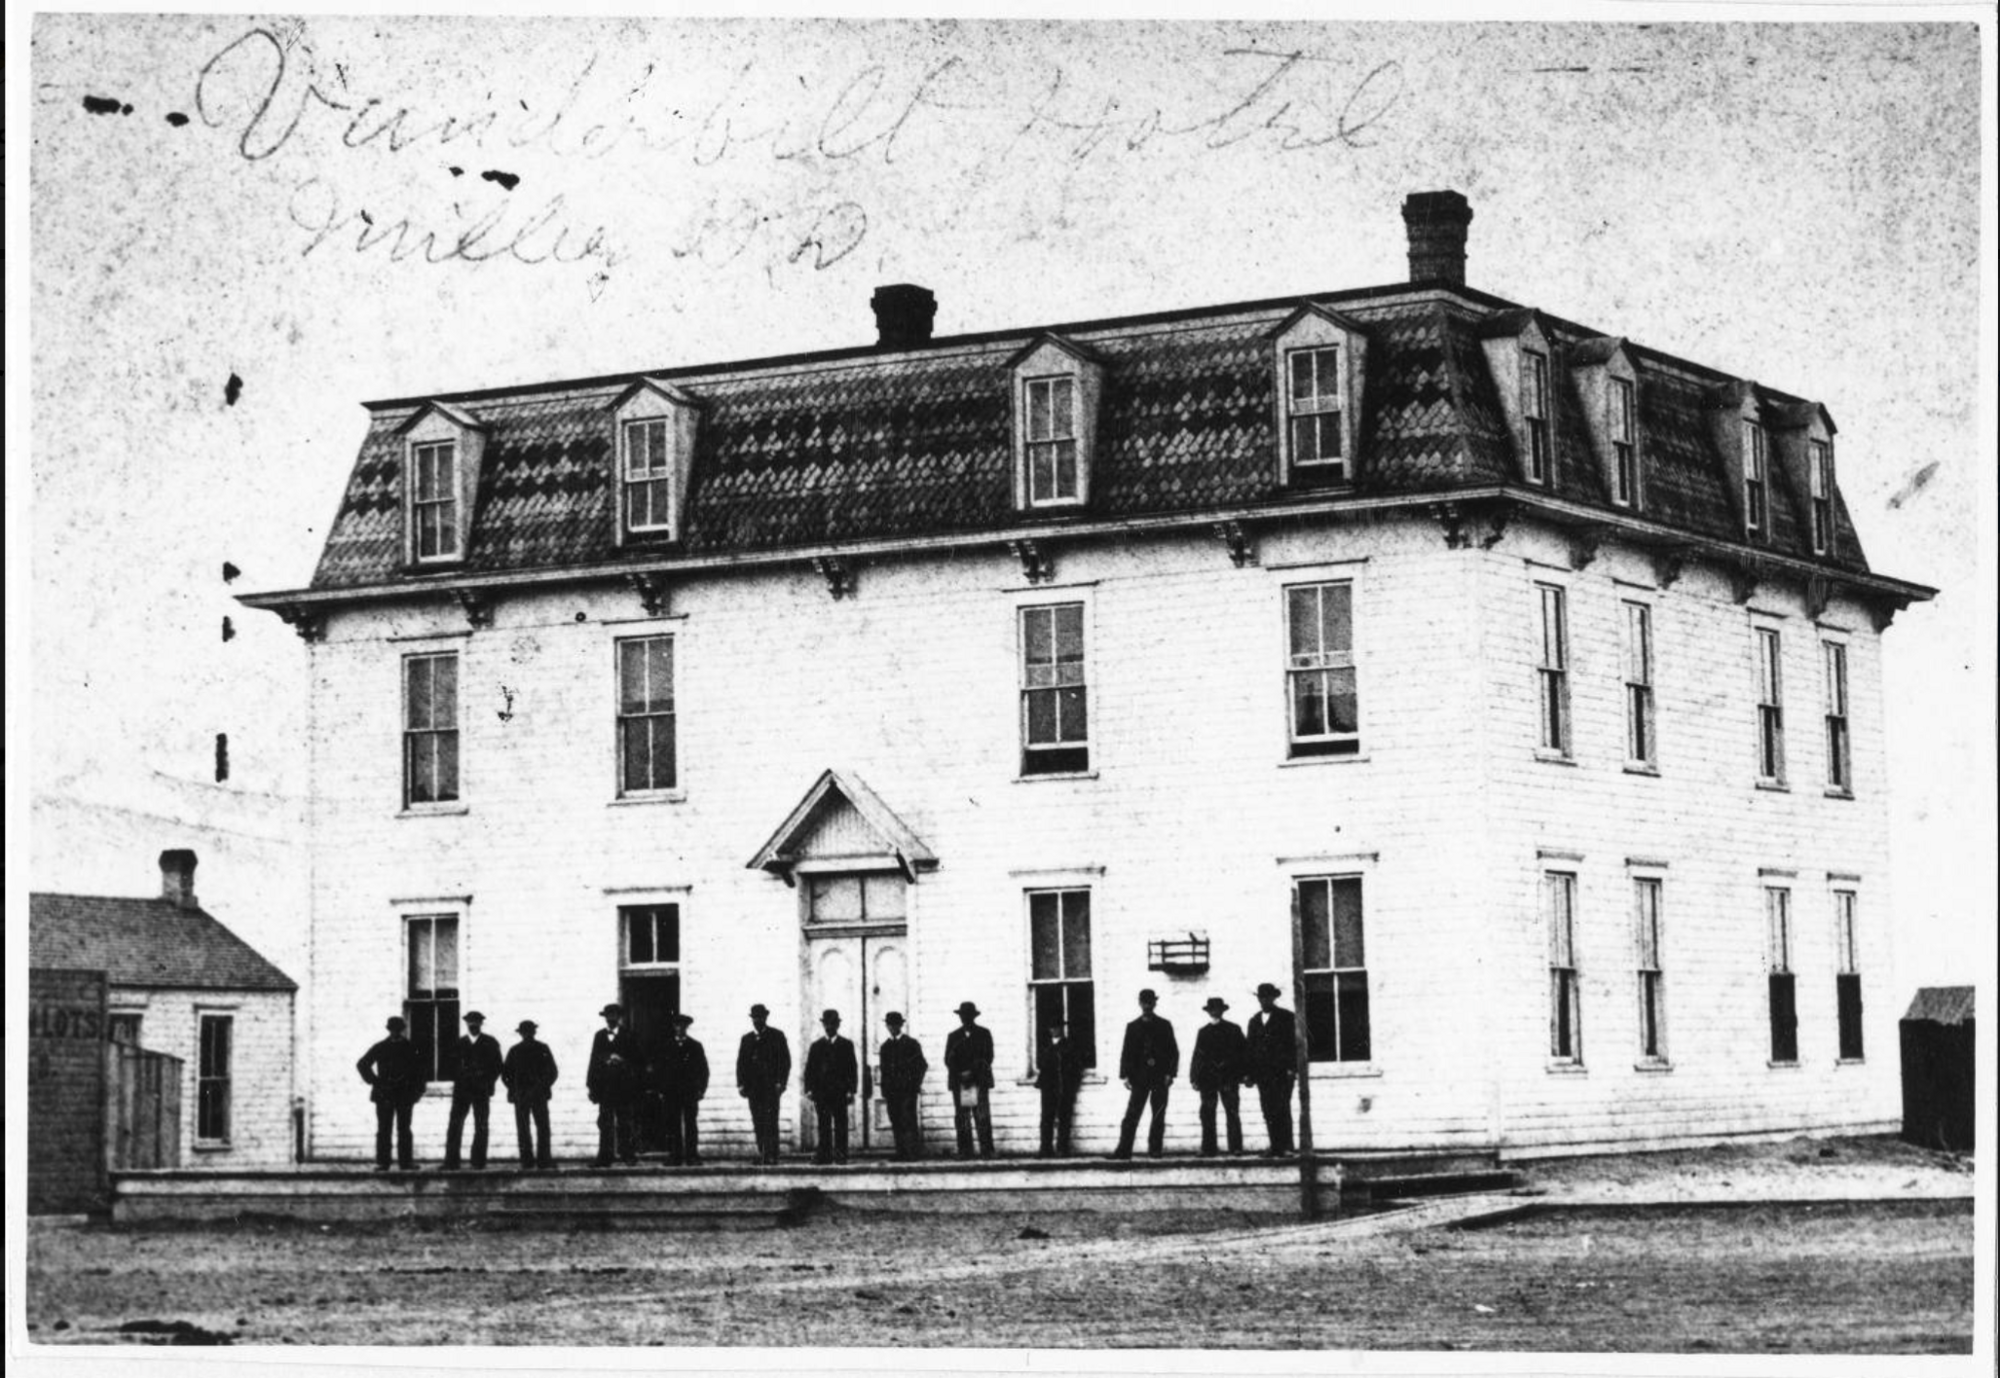 A black and white photograph of the Vanderbilt Hotel, taken soon after it opened by Jasper N. Templeman. An Ohio native, Templeman fought in an Iowa regiment during the Civil War and afterward moved to Miller, where he opened a photographic studio. He died in Oxford, Iowa, in 1890.